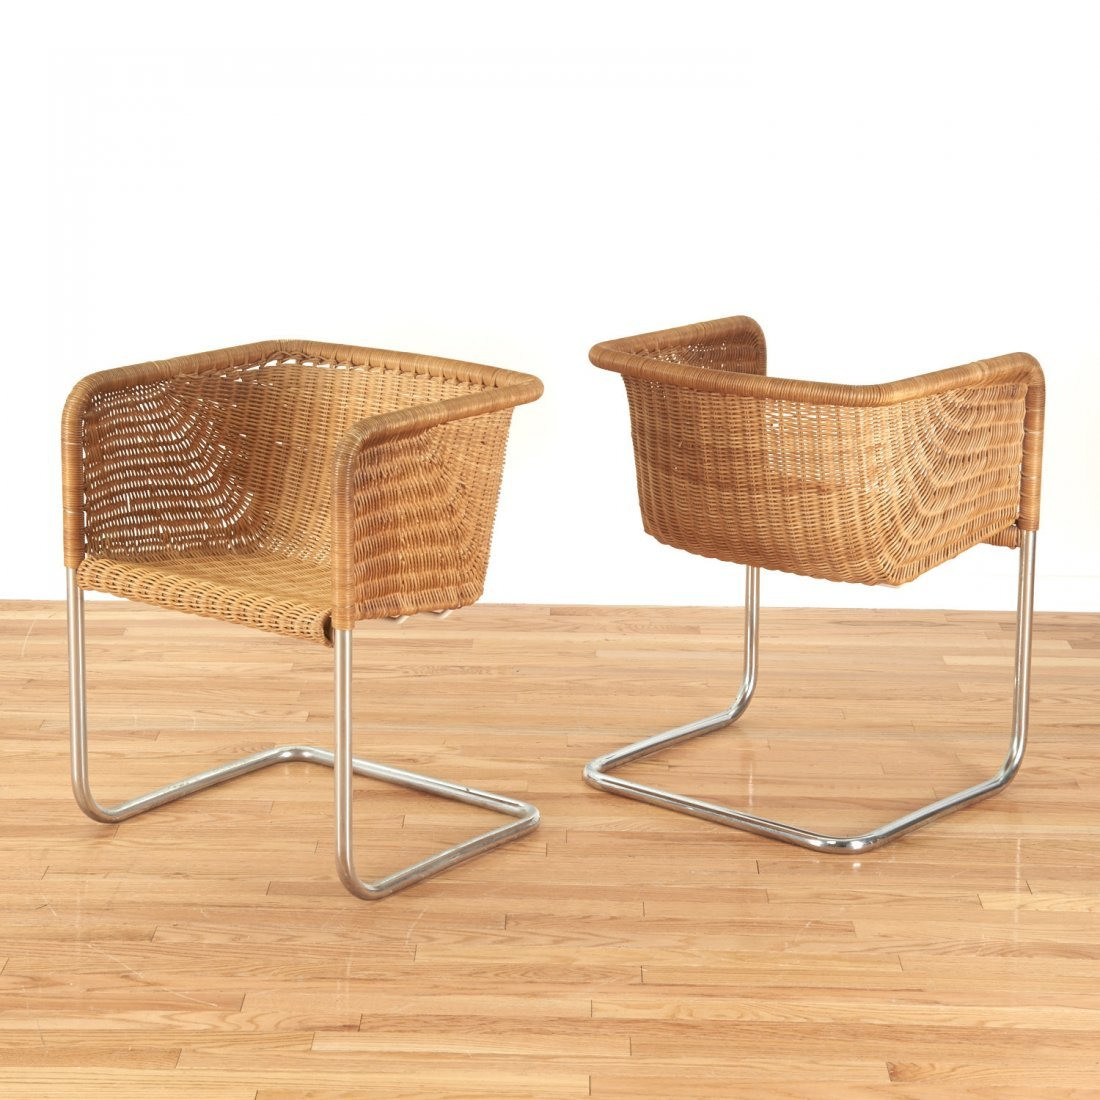 Set (6) wicker and chrome chairs by Harvey Probber - 2